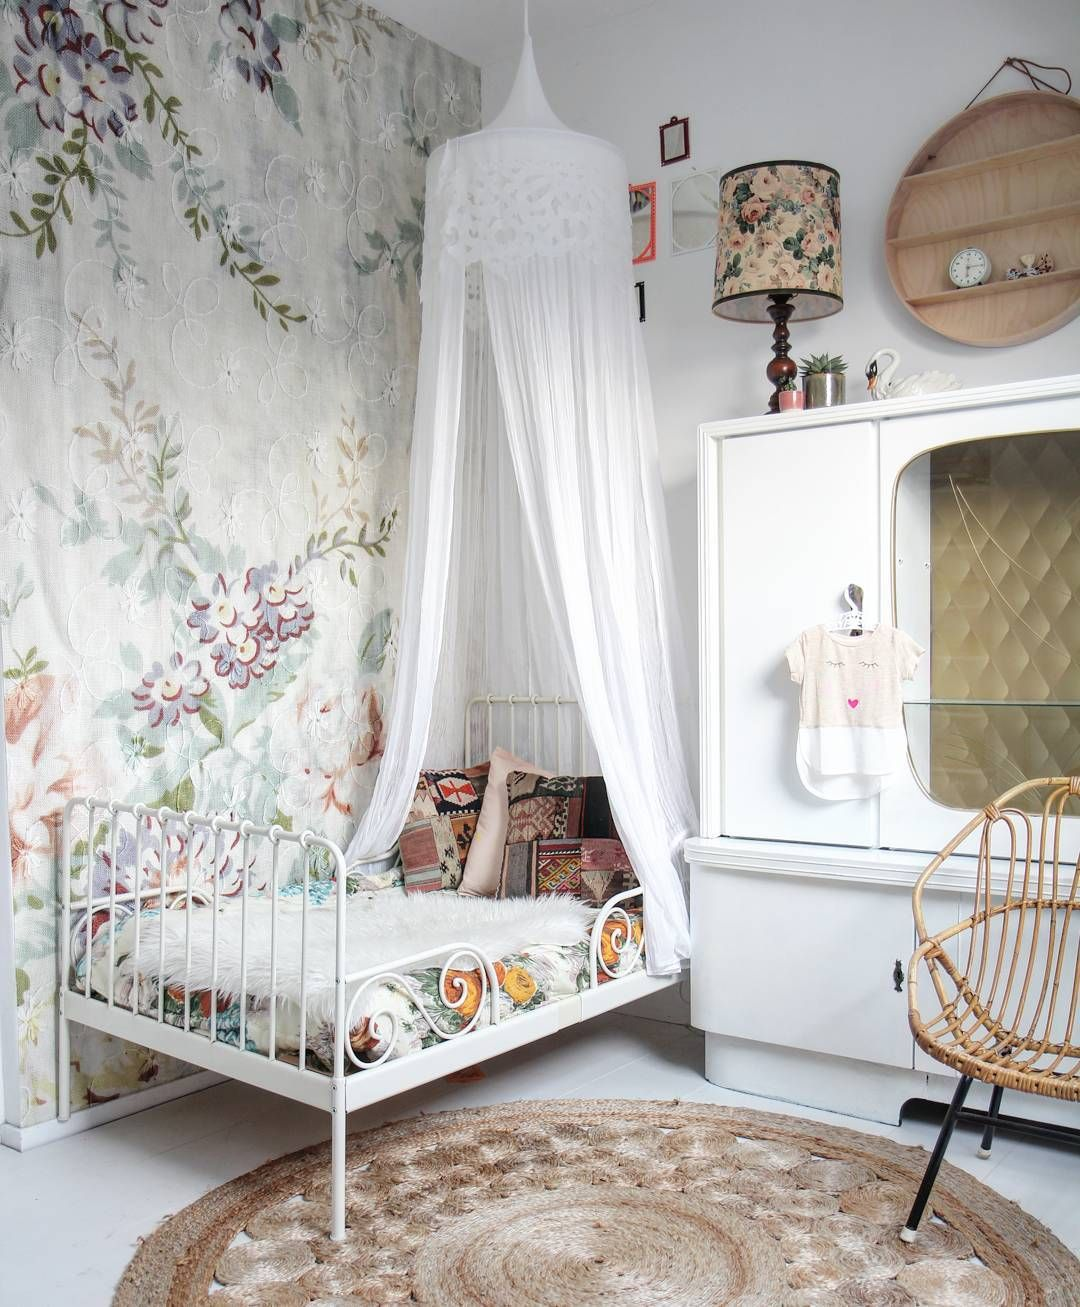 Elegant Adorable Vintage Inspired Feminine Girls Room With Floral Wallpaper And IKEA  Minnen Bed.